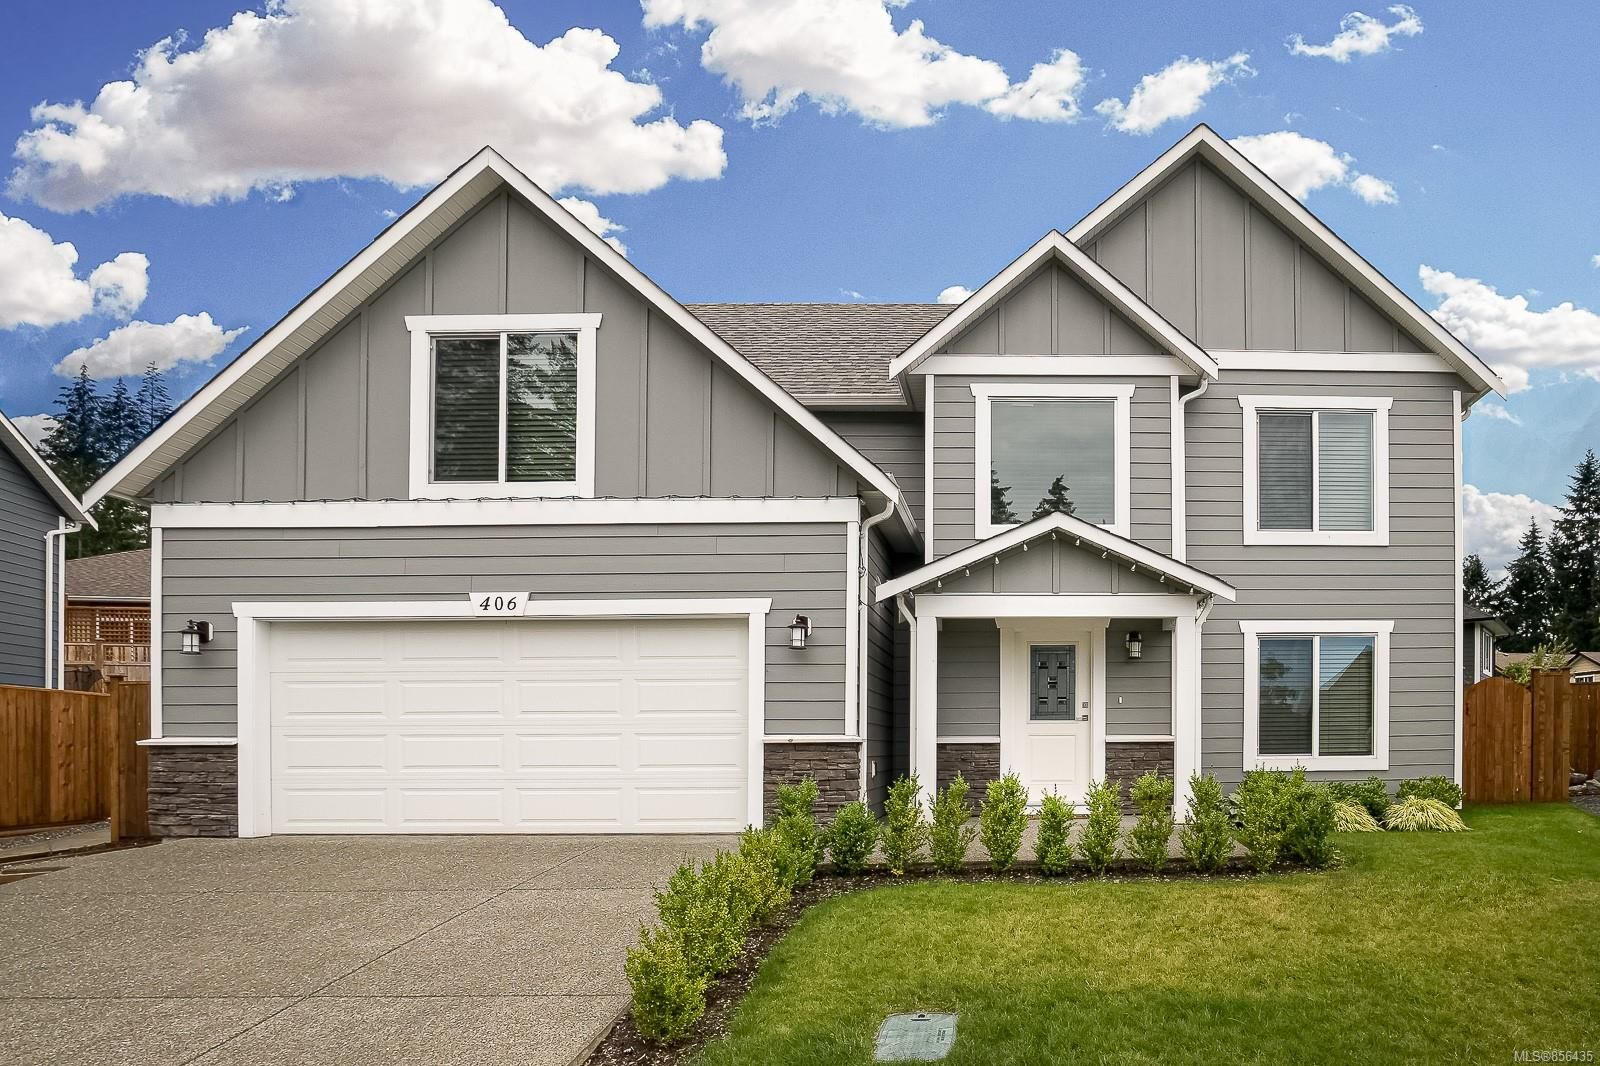 Main Photo: 406 303 Arden Rd in : CV Courtenay City House for sale (Comox Valley)  : MLS®# 856435